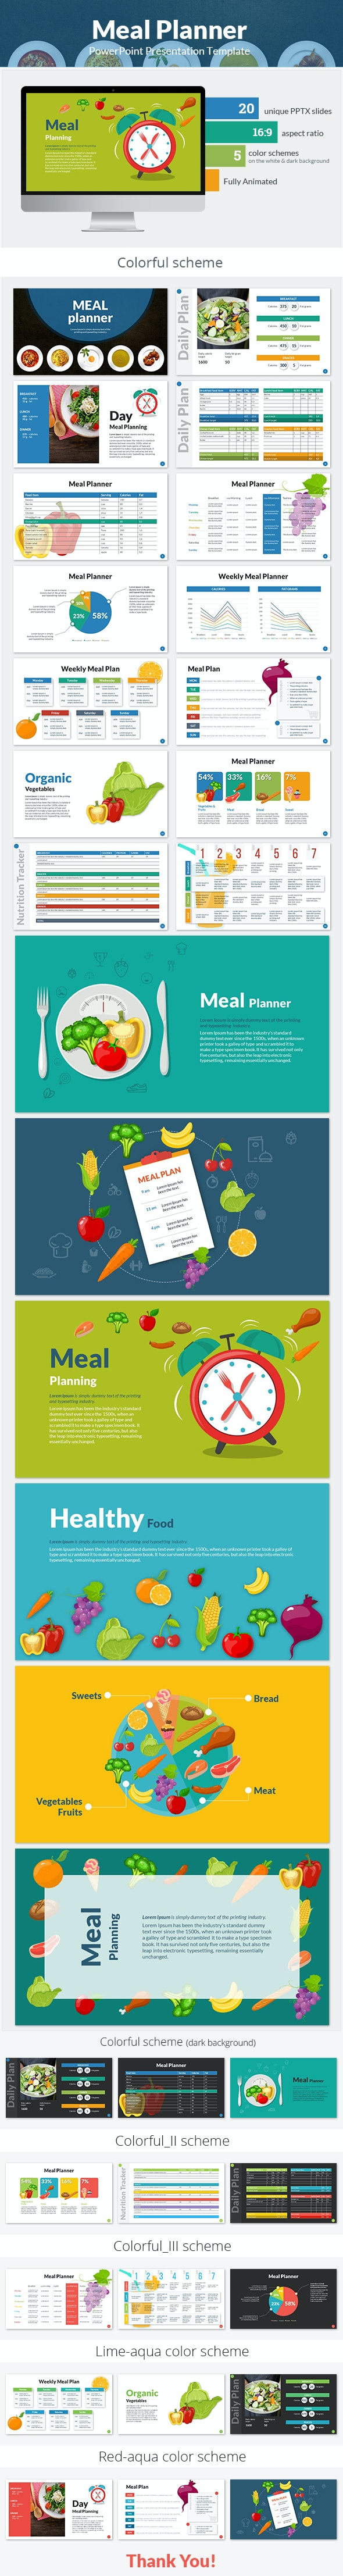 Meal Planner PowerPoint Presentation Template - PowerPoint Templates Presentation Templates